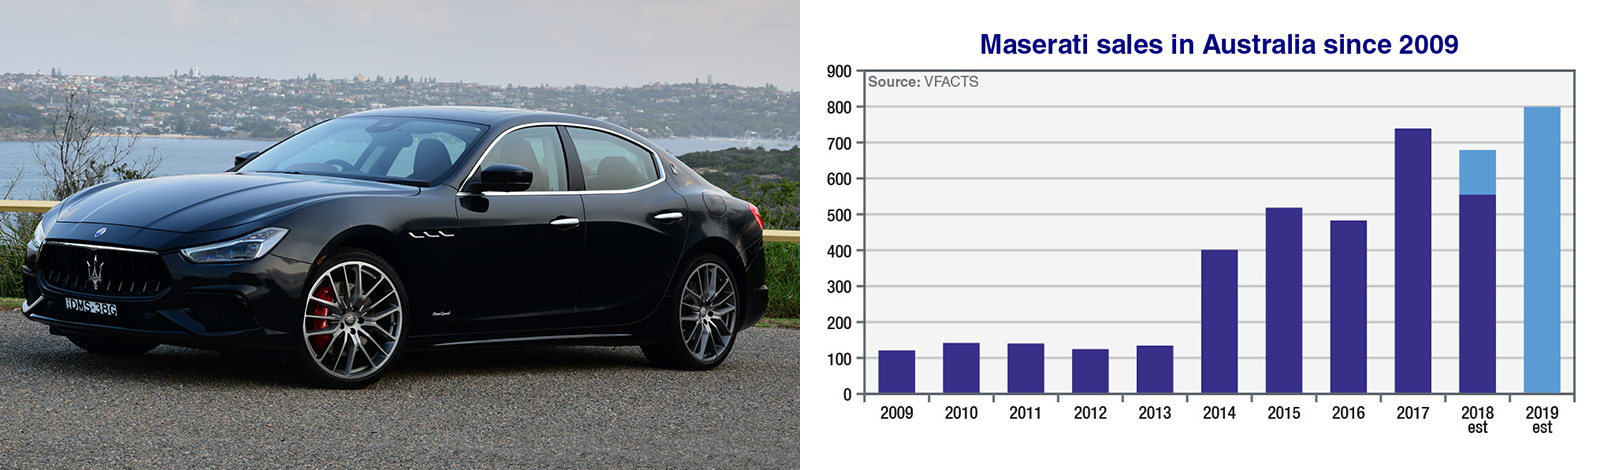 Maserati To Double Sales By 2020